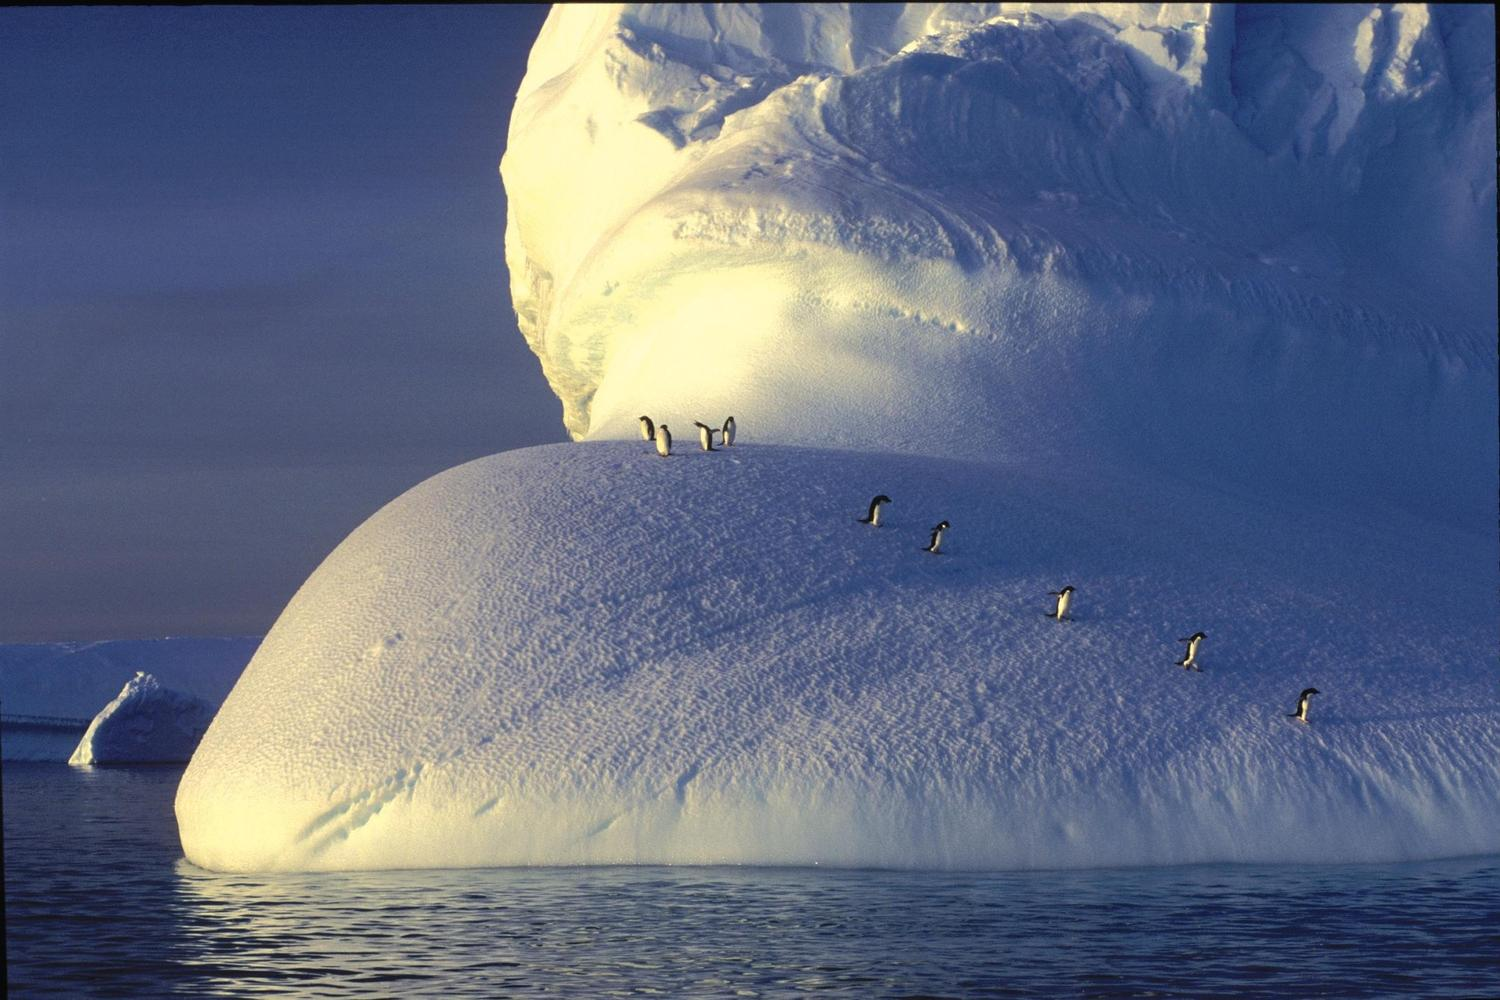 Penguins trooping off an iceberg